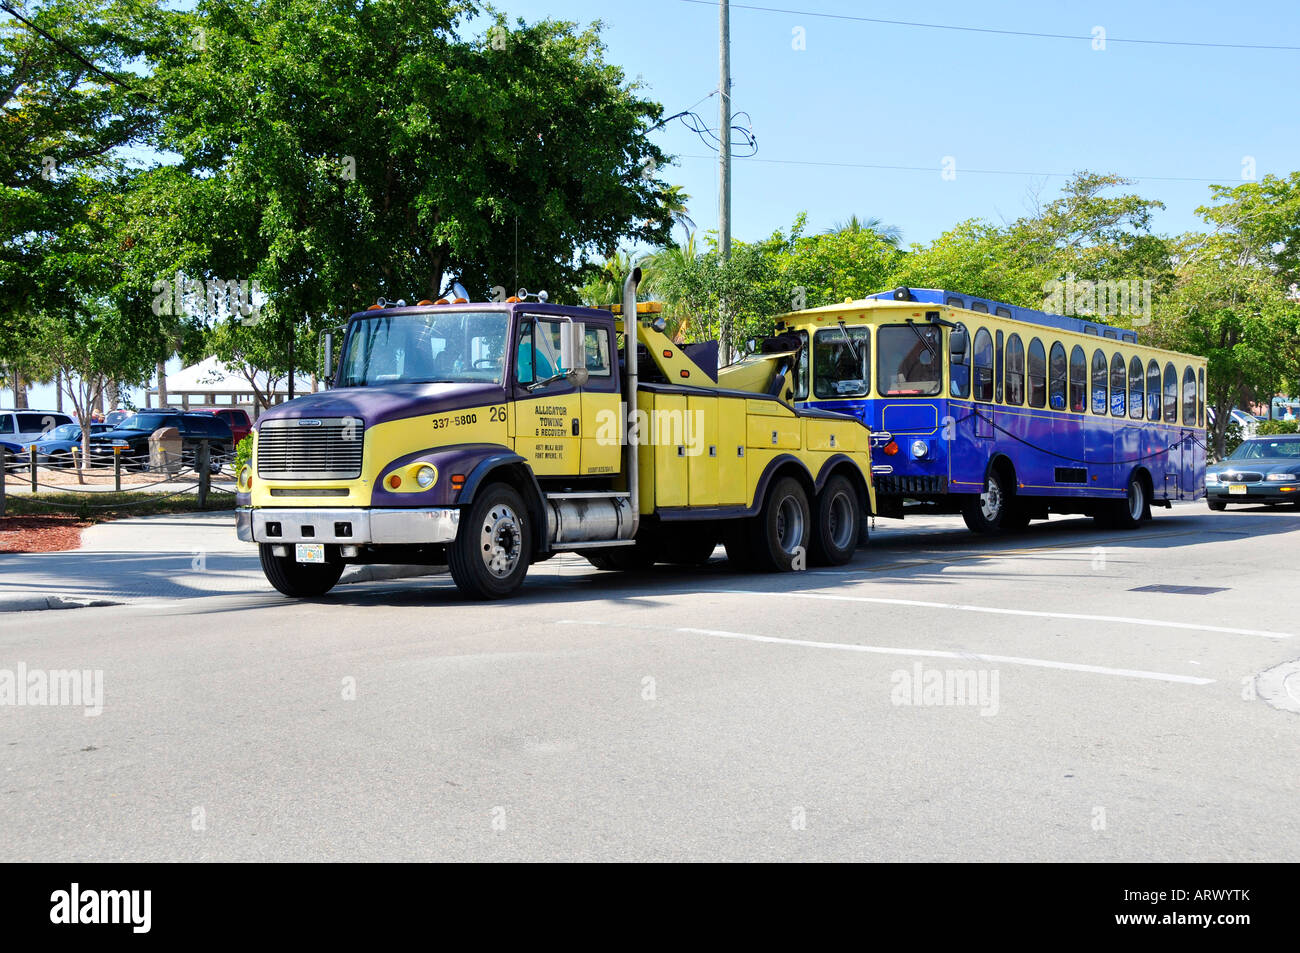 Broken down bus being towed by a tow truck for repair Stock Photo, Royalty Free Image: 16137810 ...